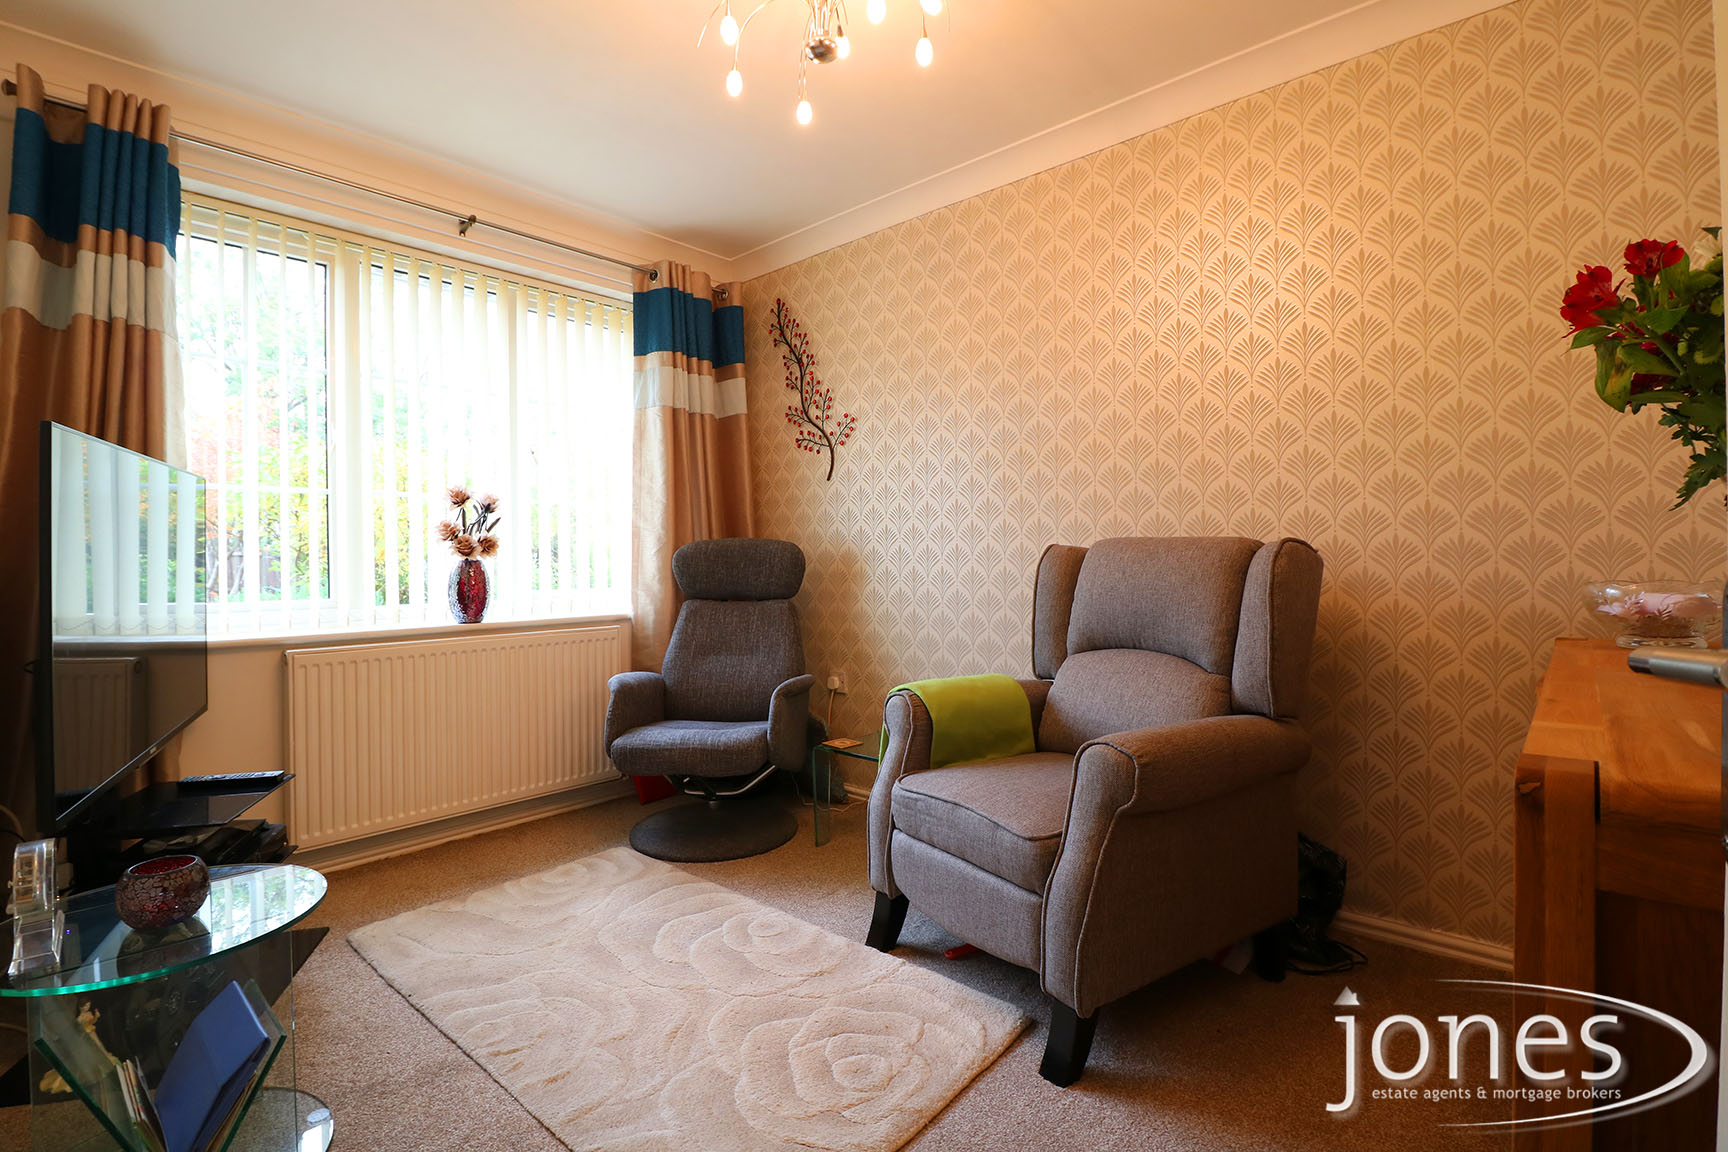 Home for Sale Let - Photo 03 West End Way, Stockton on Tees, TS18 3UA